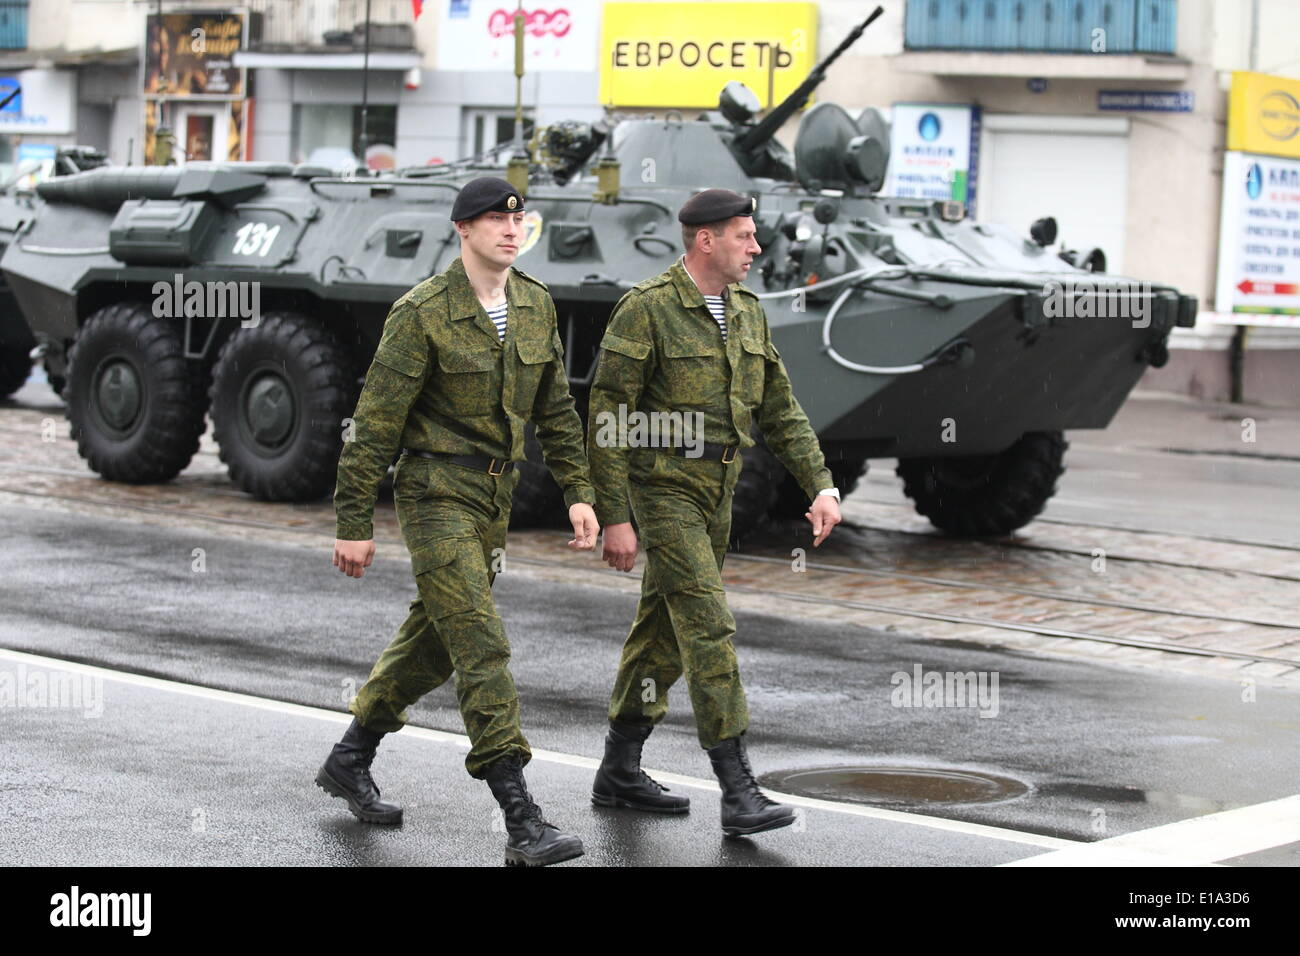 Kaliningrad, RUSSIA. 9th May, 2014. Kaliningrad, Russia 9th, May 2014 Russian Army soldiers are seen during a large military parade in Kaliningrad, Russia, to mark Victory Day, May 9, 2014. Thousands of Russian troops marched today throughout the country to mark 69 years since victory in World War II in a show of military might amid tensions in Ukraine following Moscow's annexation of Crimea. © Michal Fludra/NurPhoto/ZUMAPRESS.com/Alamy Live News - Stock Image